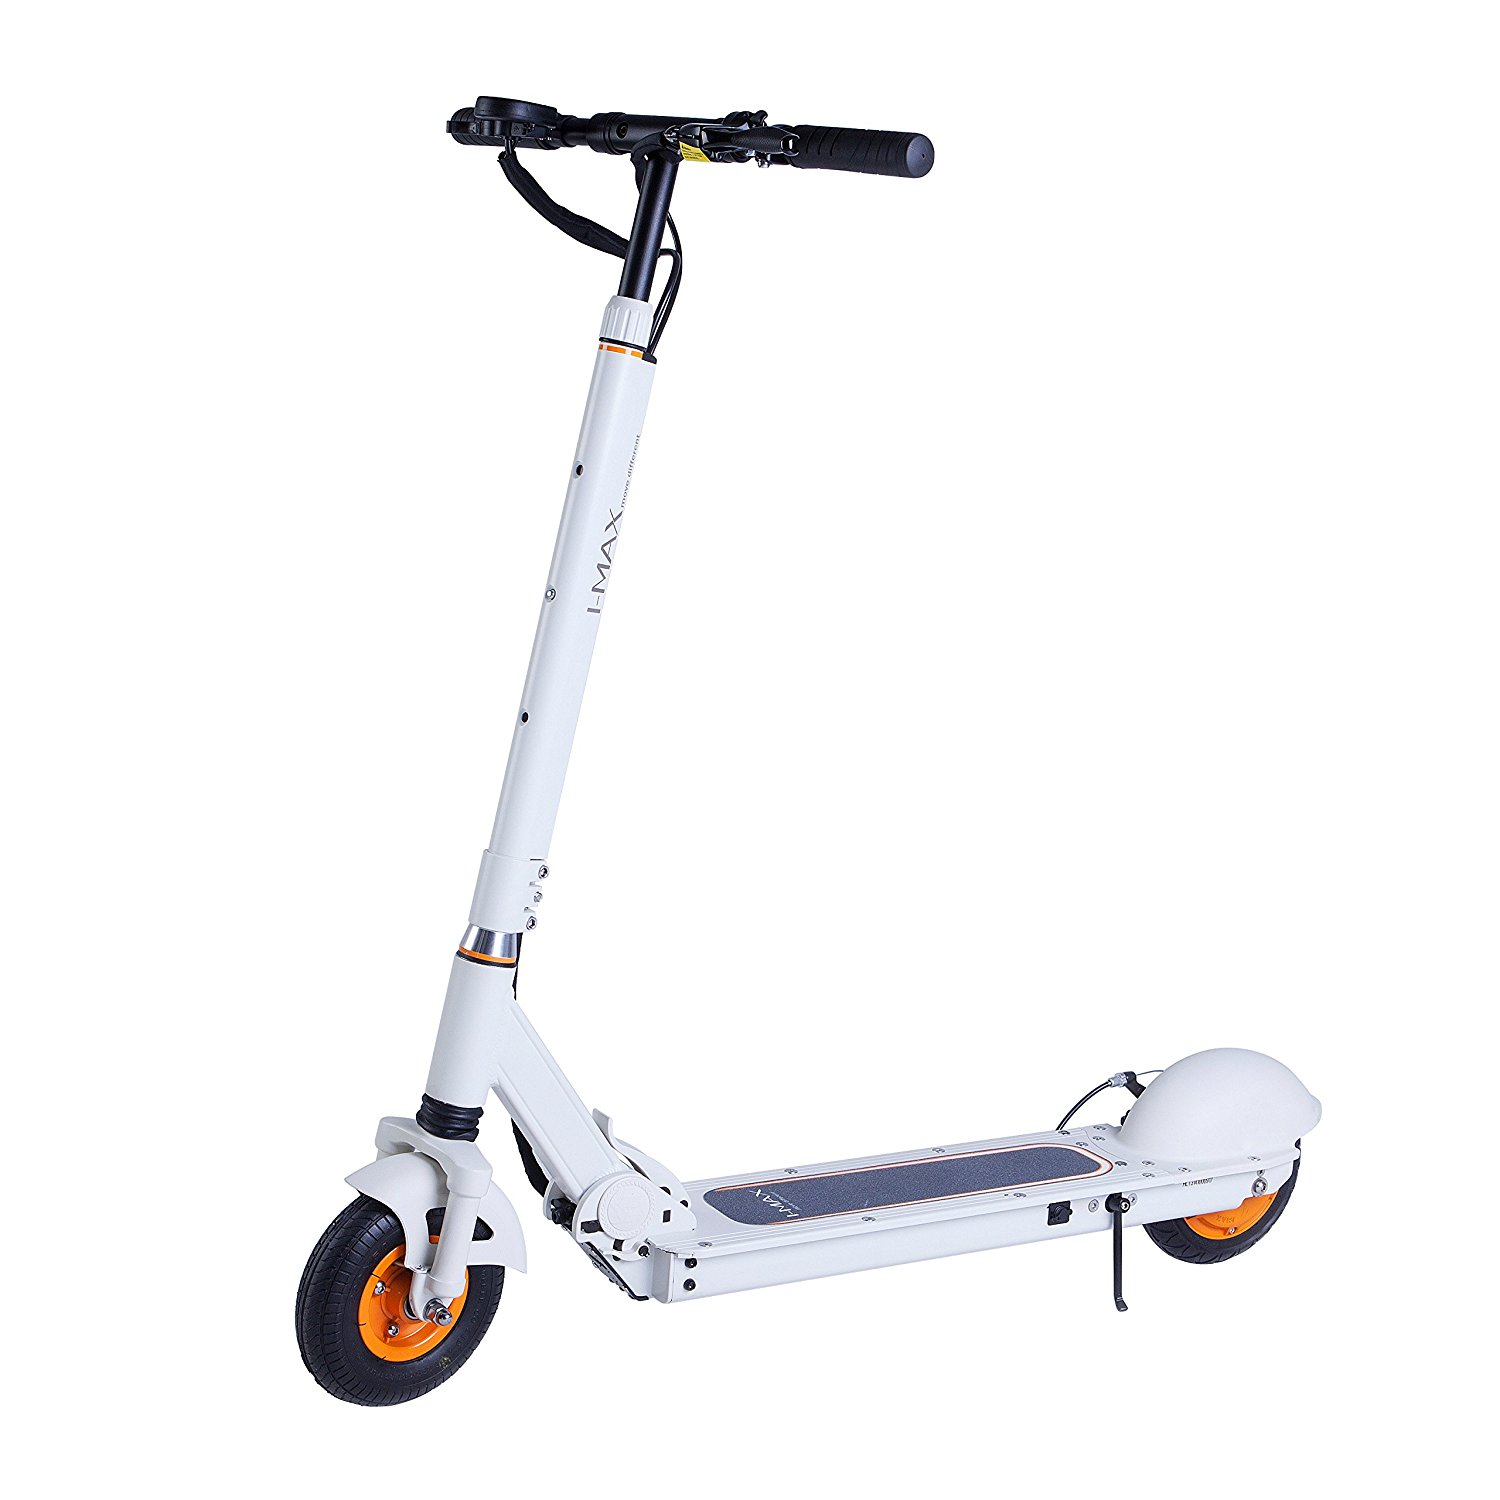 IMAX T3 - Electric Scooter - Lithium Powered 36V/10Ah - 350W Motor - 18 MPH